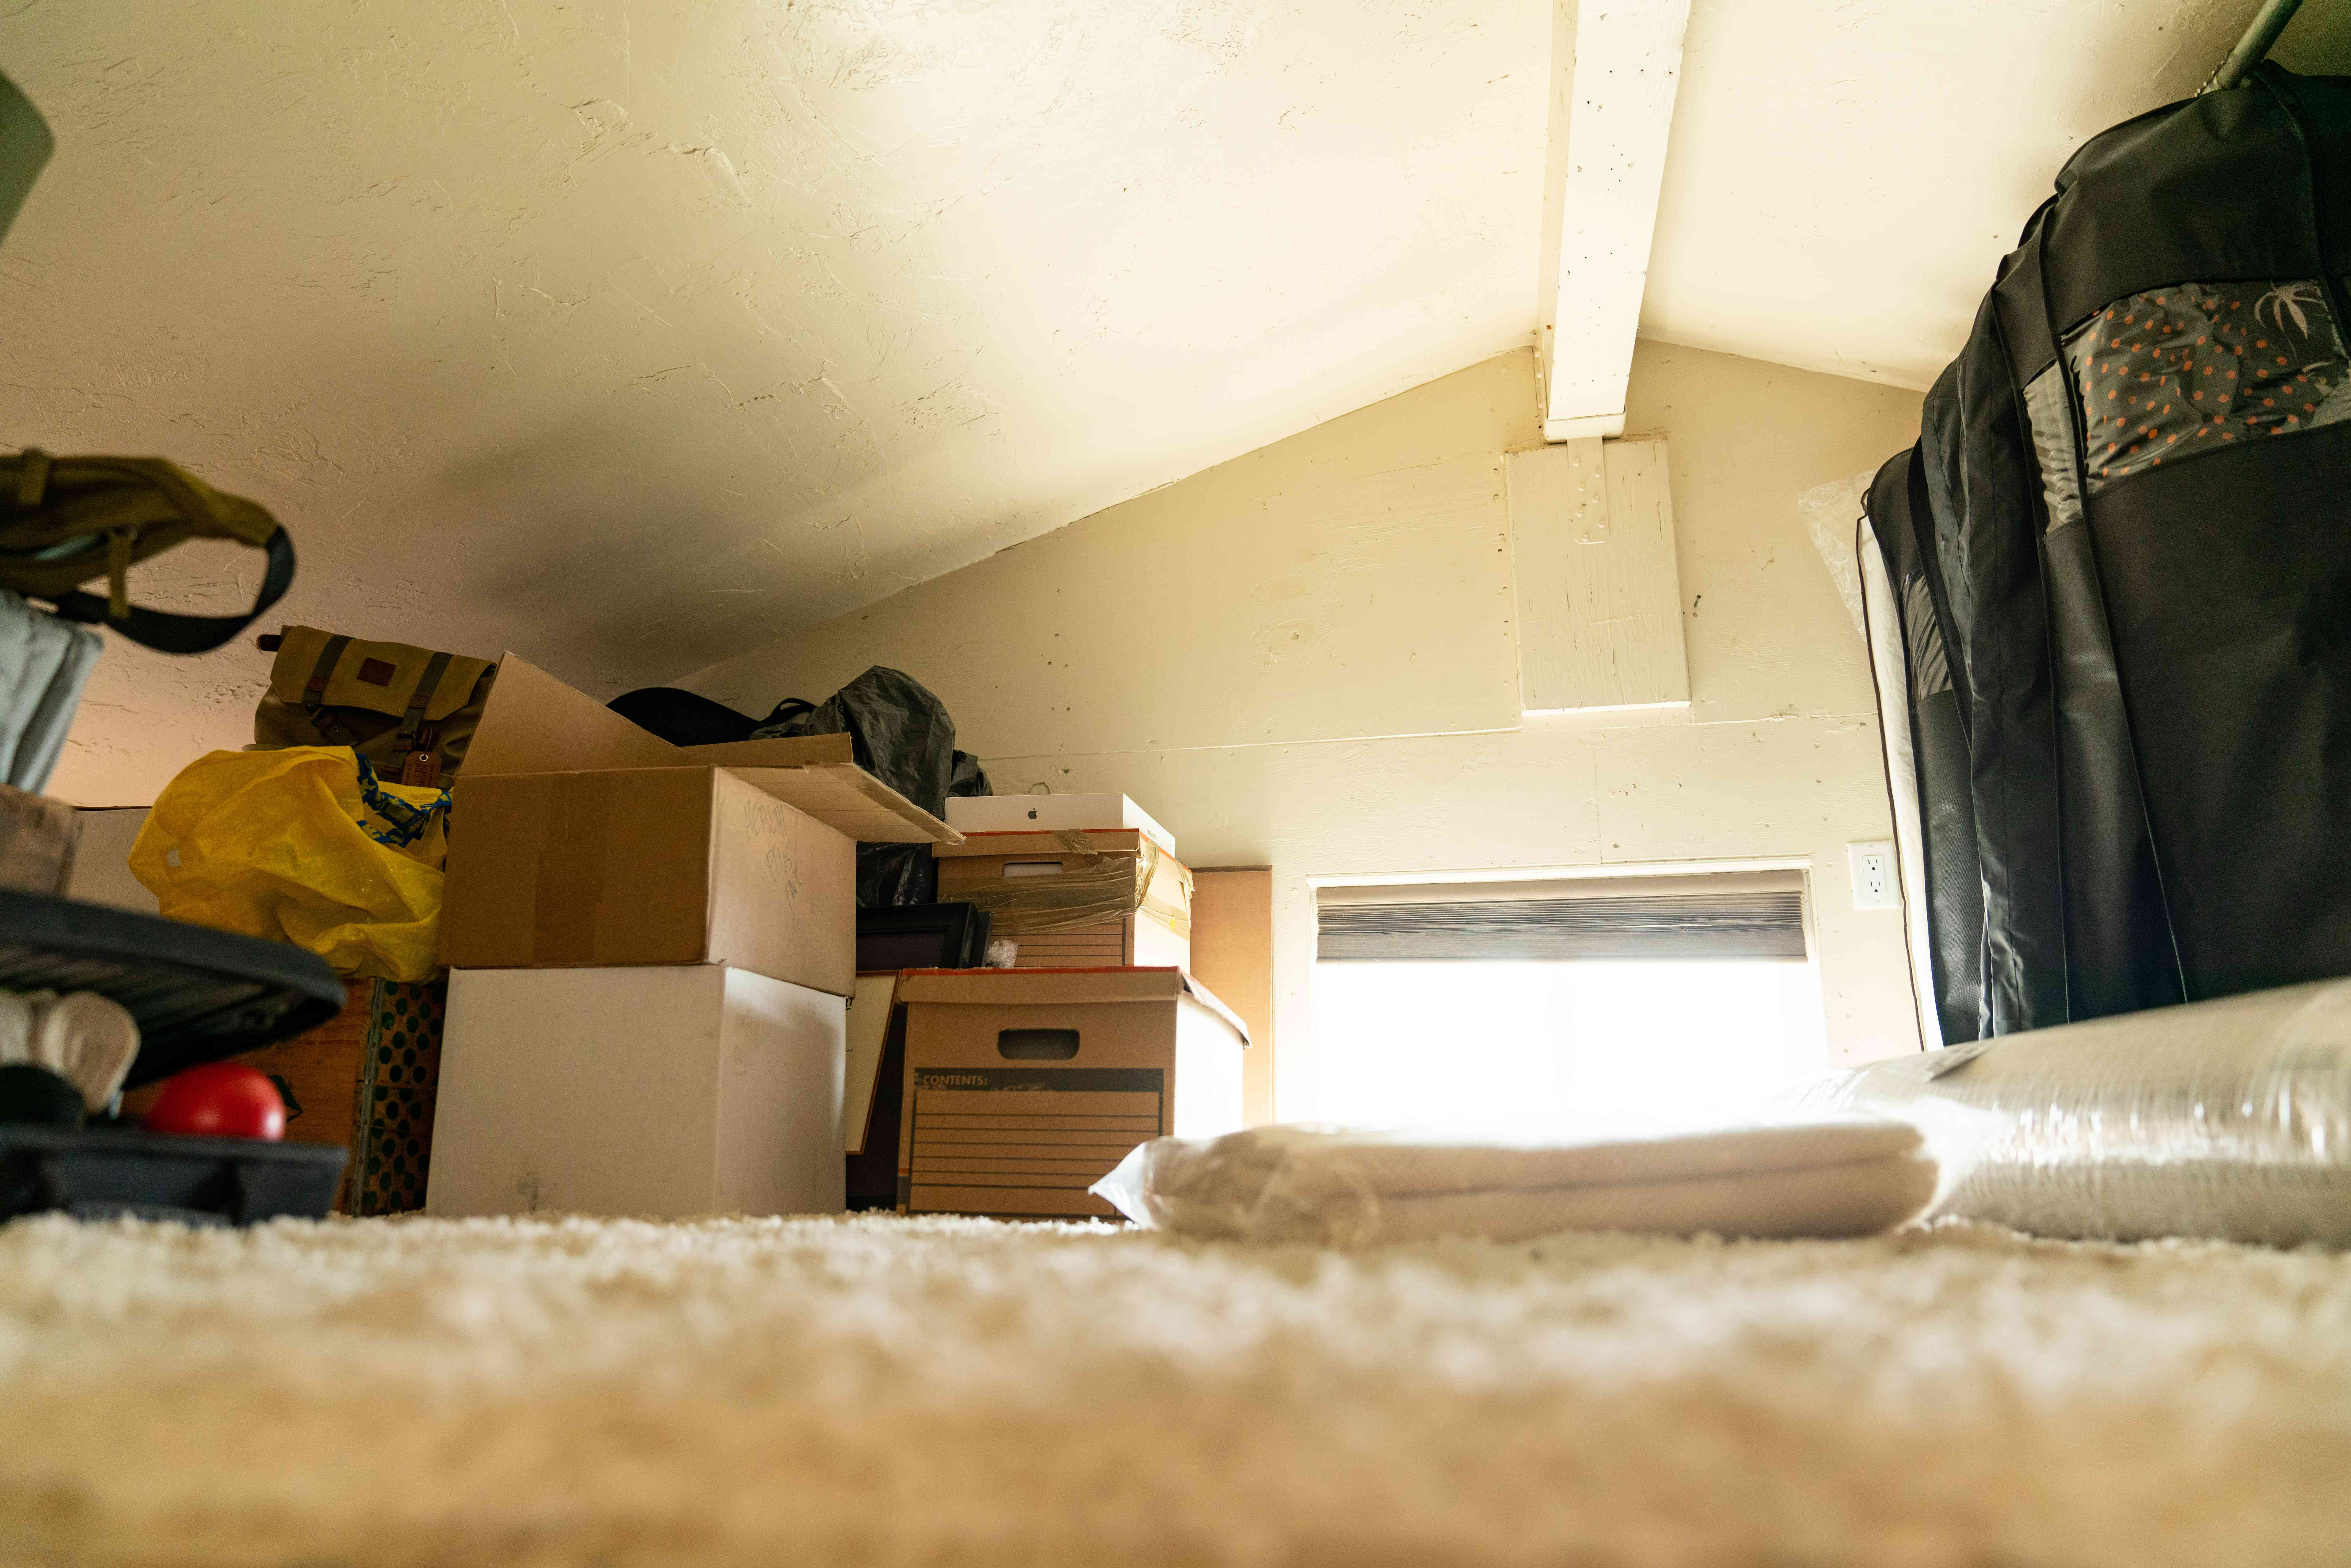 Attic crawl space with boxes causing musty odor